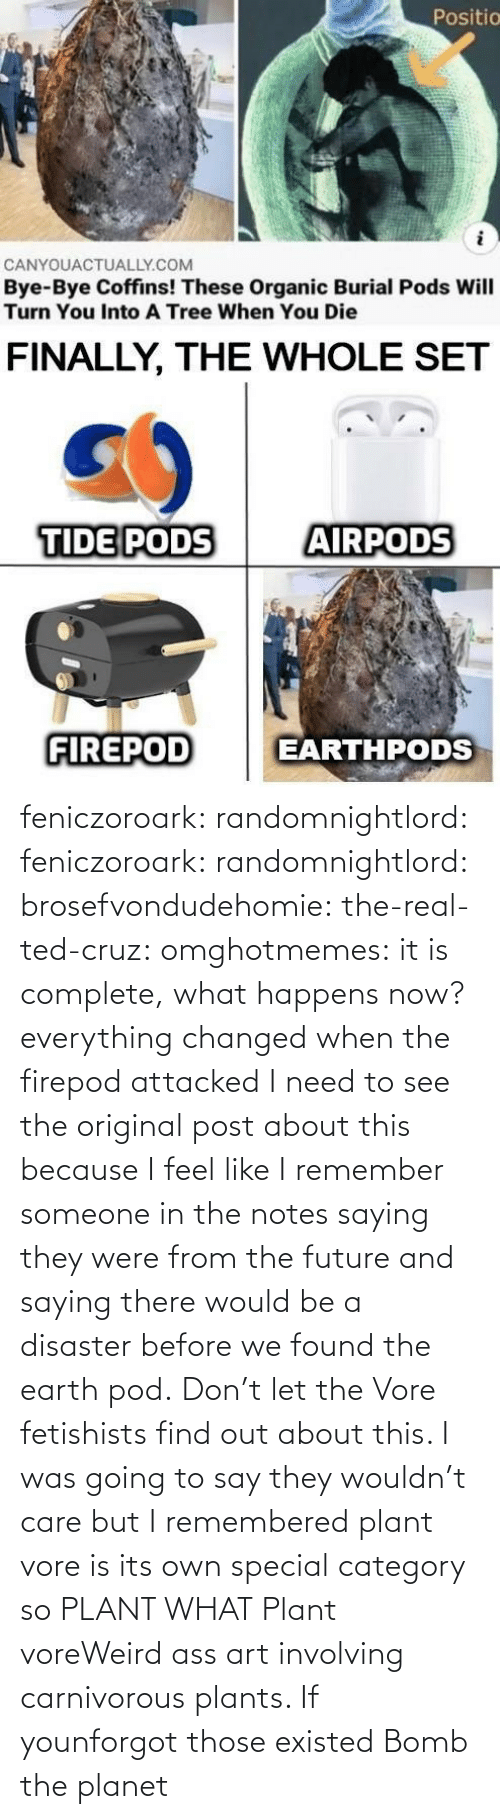 Future: feniczoroark:  randomnightlord:  feniczoroark:  randomnightlord:  brosefvondudehomie: the-real-ted-cruz:  omghotmemes: it is complete, what happens now? everything changed when the firepod attacked    I need to see the original post about this because I feel like I remember someone in the notes saying they were from the future and saying there would be a disaster before we found the earth pod.    Don't let the Vore fetishists find out about this.    I was going to say they wouldn't care but I remembered plant vore is its own special category so   PLANT WHAT   Plant voreWeird ass art involving carnivorous plants. If younforgot those existed   Bomb the planet